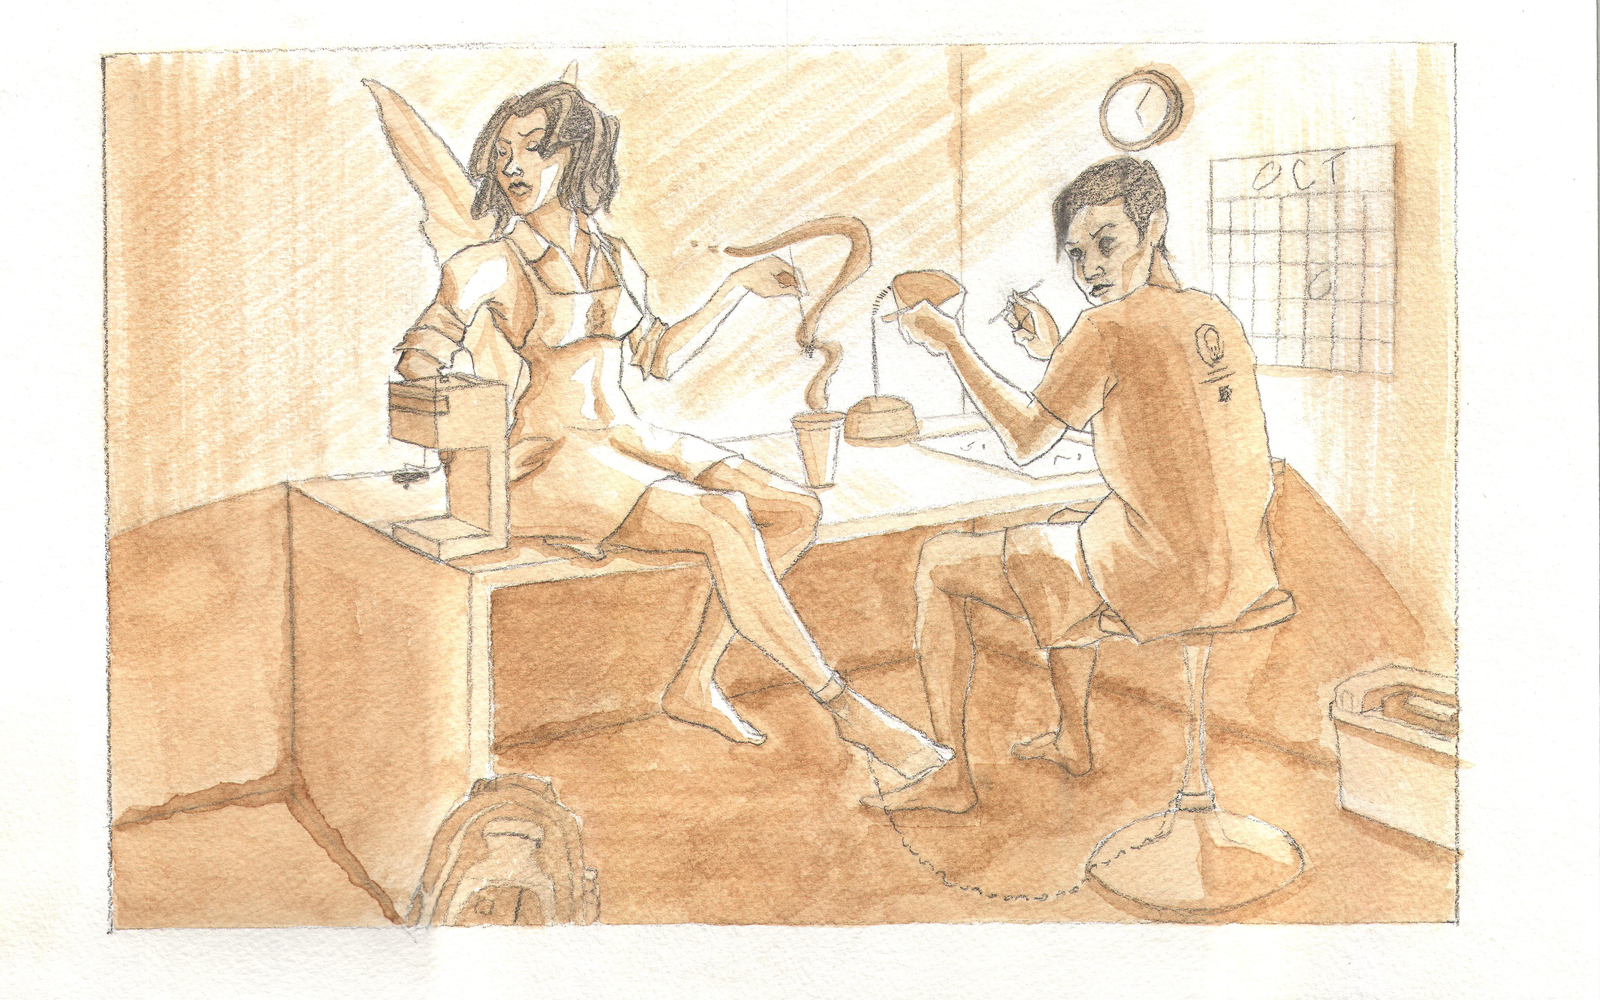 Art 28: Coffee Illustration by 0dd10ut